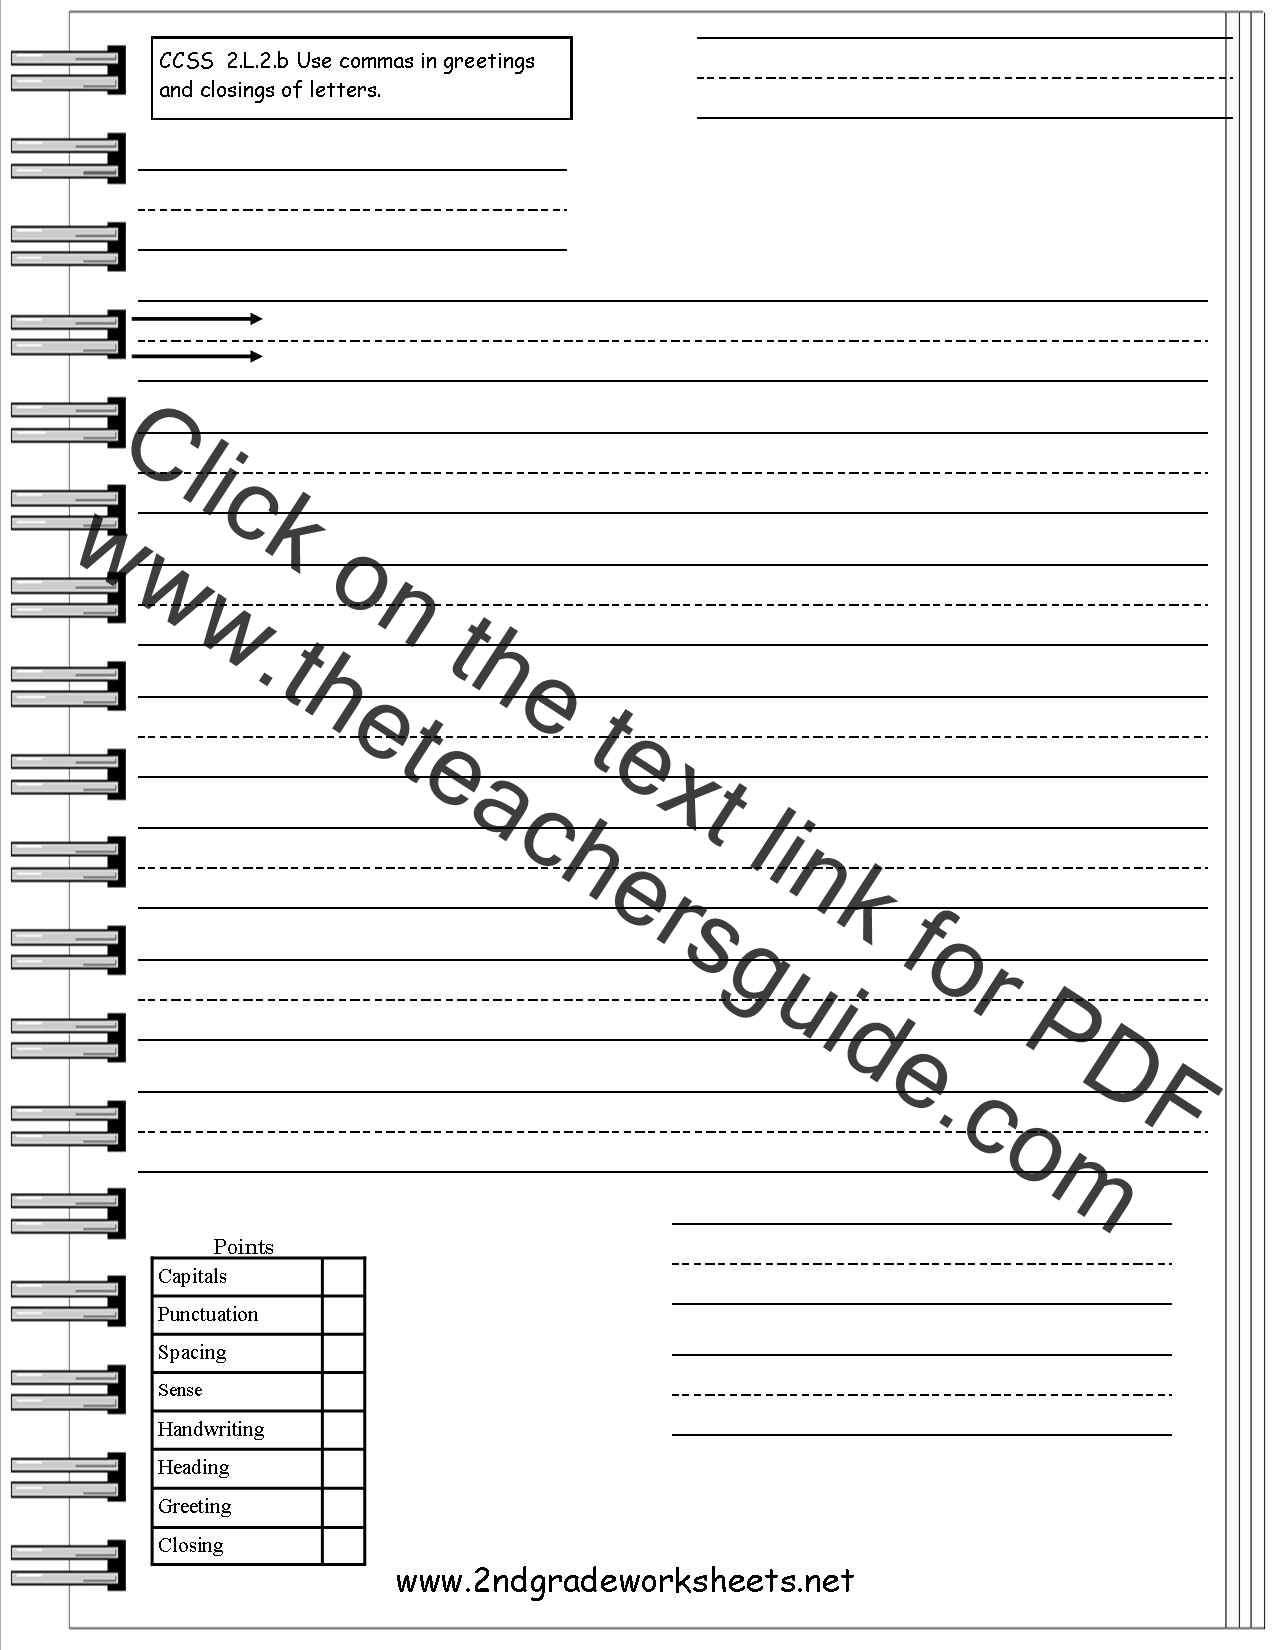 photograph regarding Printable Friendly Letter Template named Letters and Pieces of a Letter Worksheet